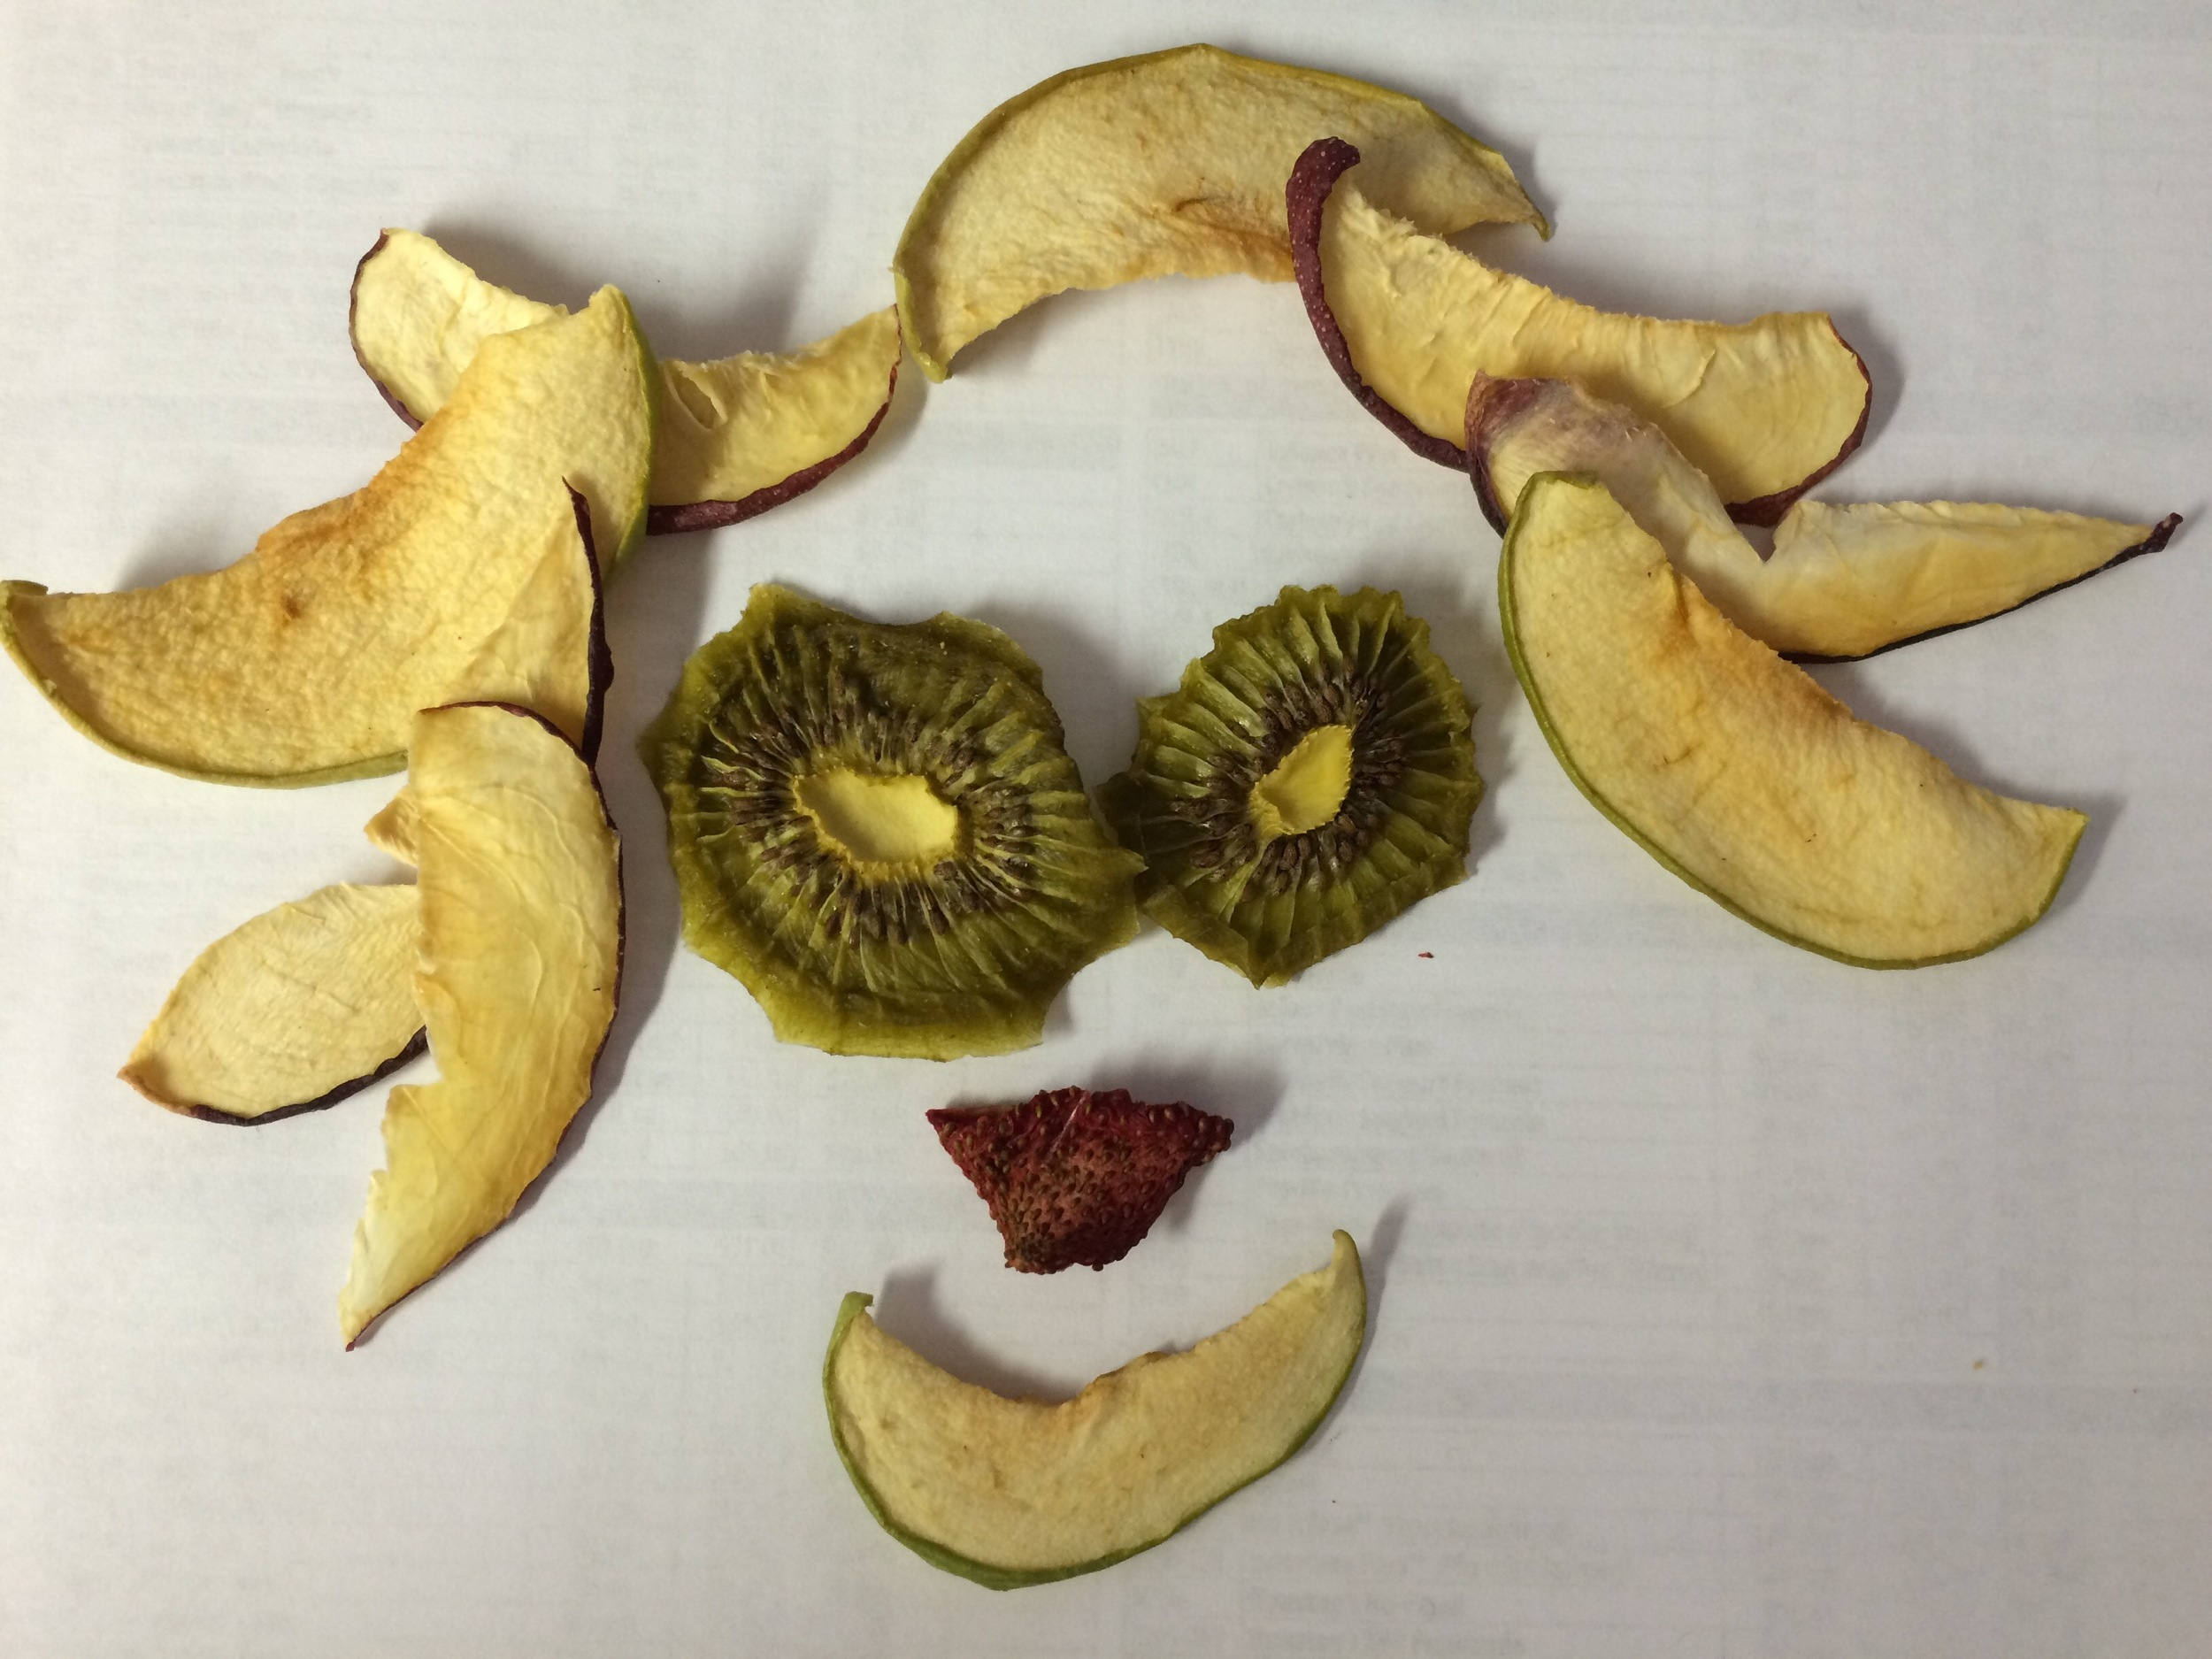 Yes, I play with my food!